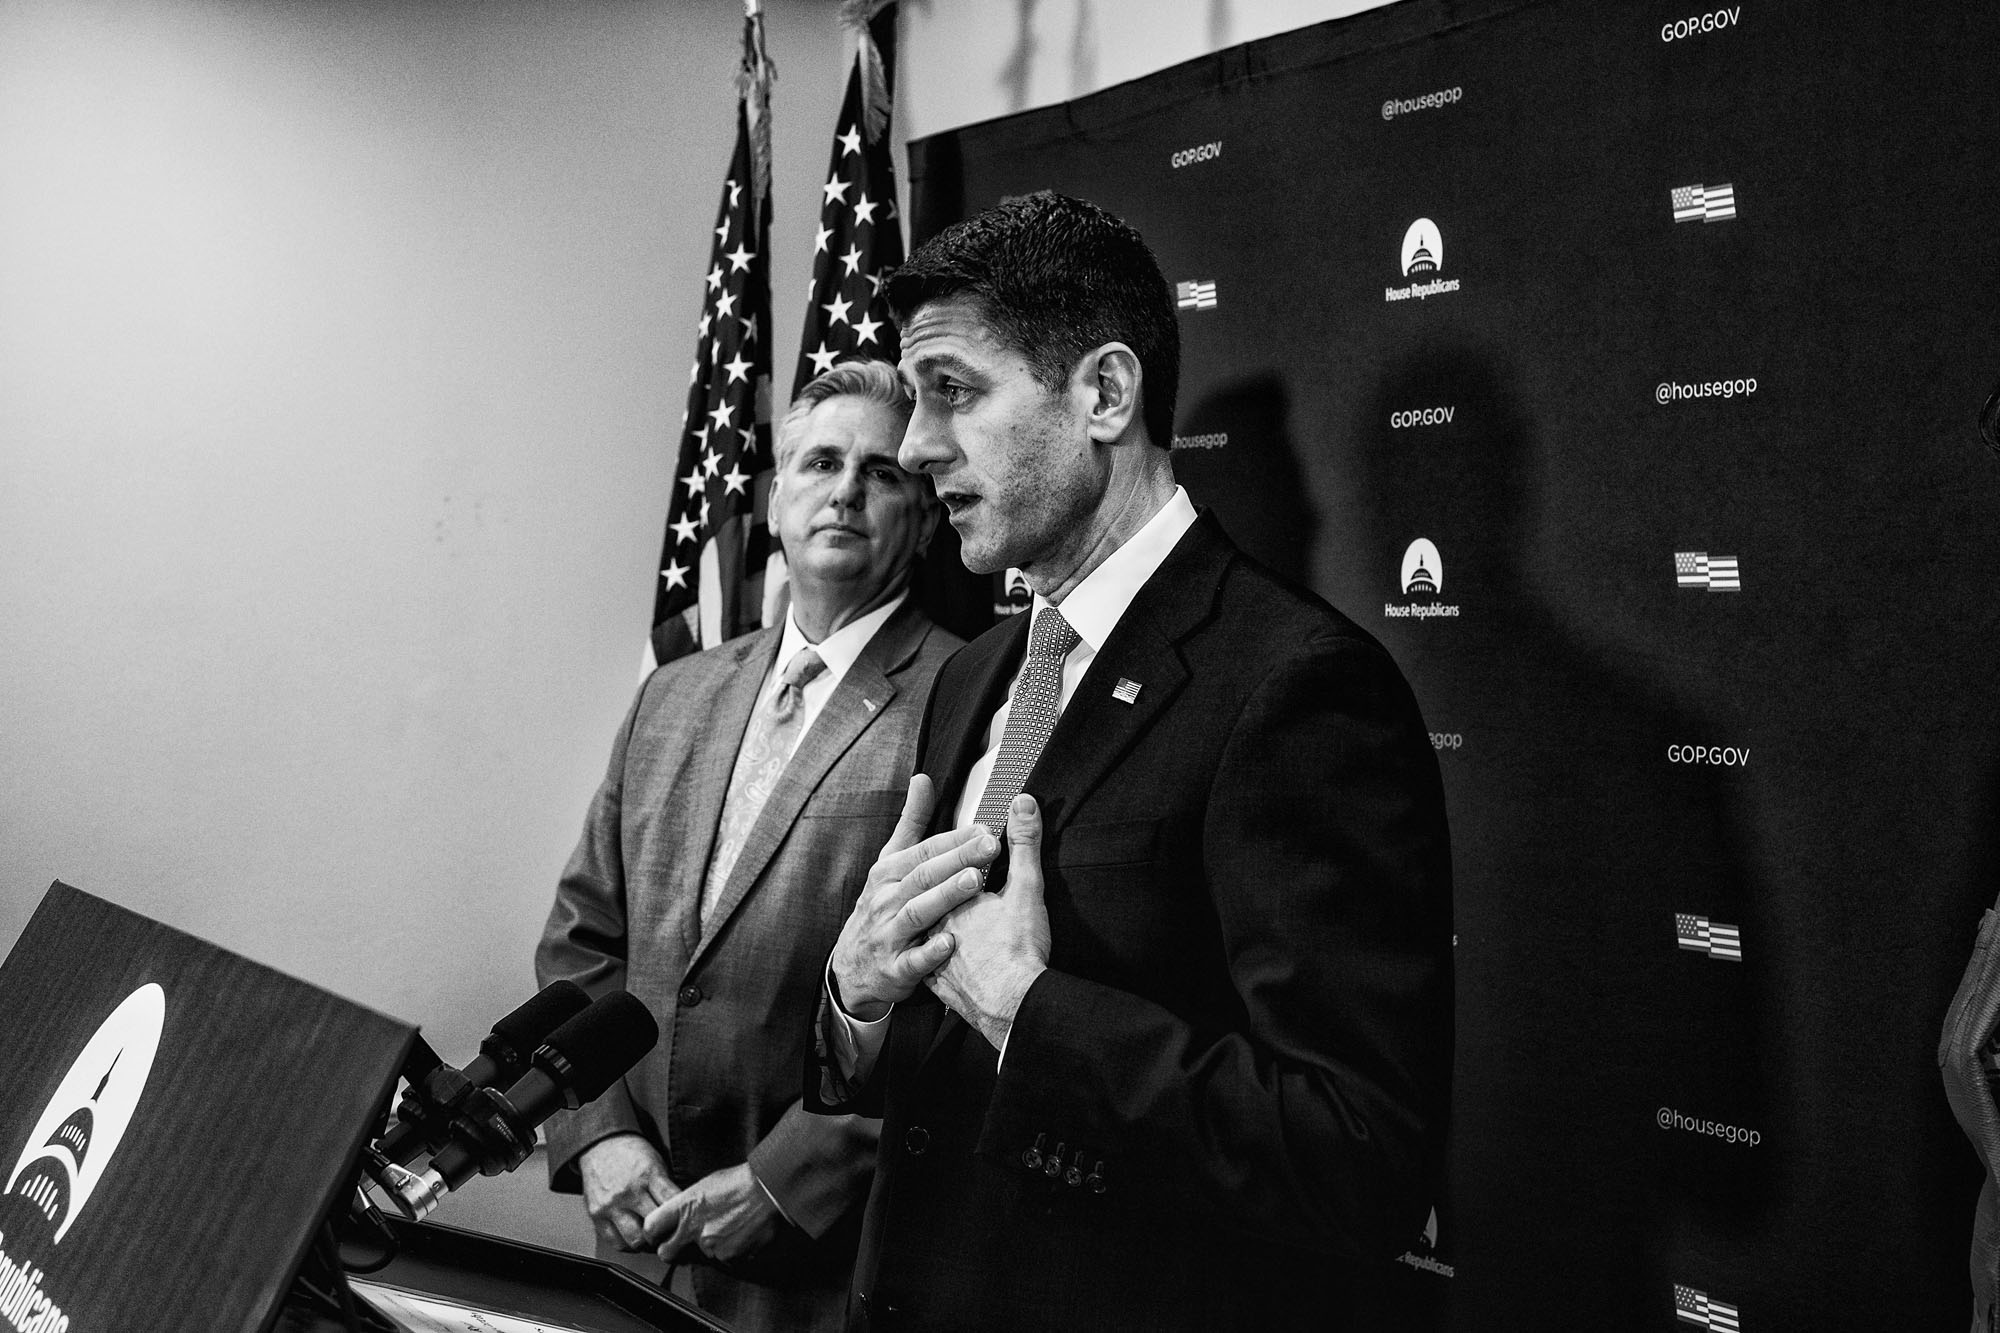 House Majority Leader Kevin McCarthy listens to House Speaker Paul Ryan speak to the media during a briefing after attending a closed House Republican conference on March 28, 2017